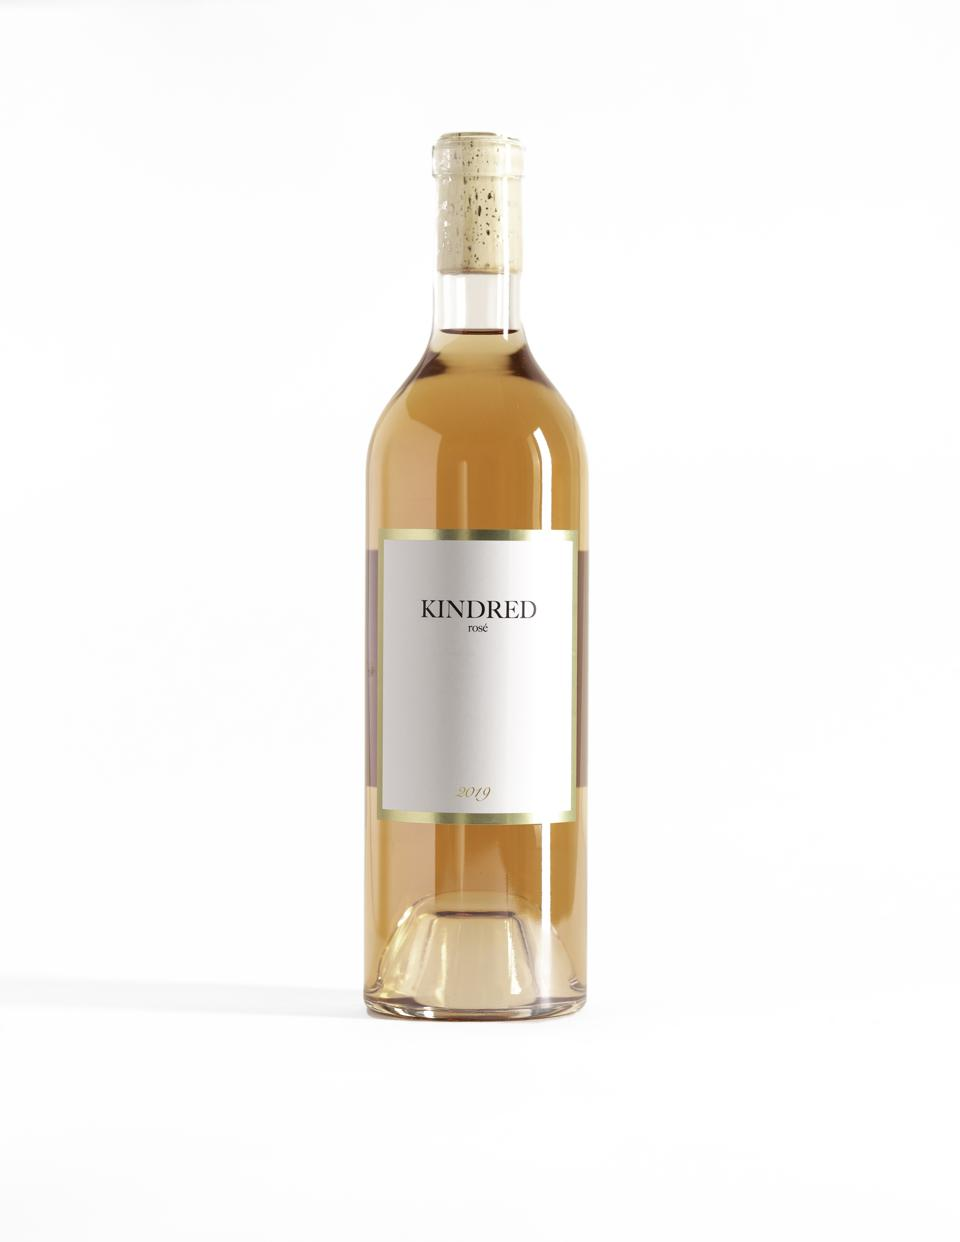 Friendship led to the creation of this rosé.